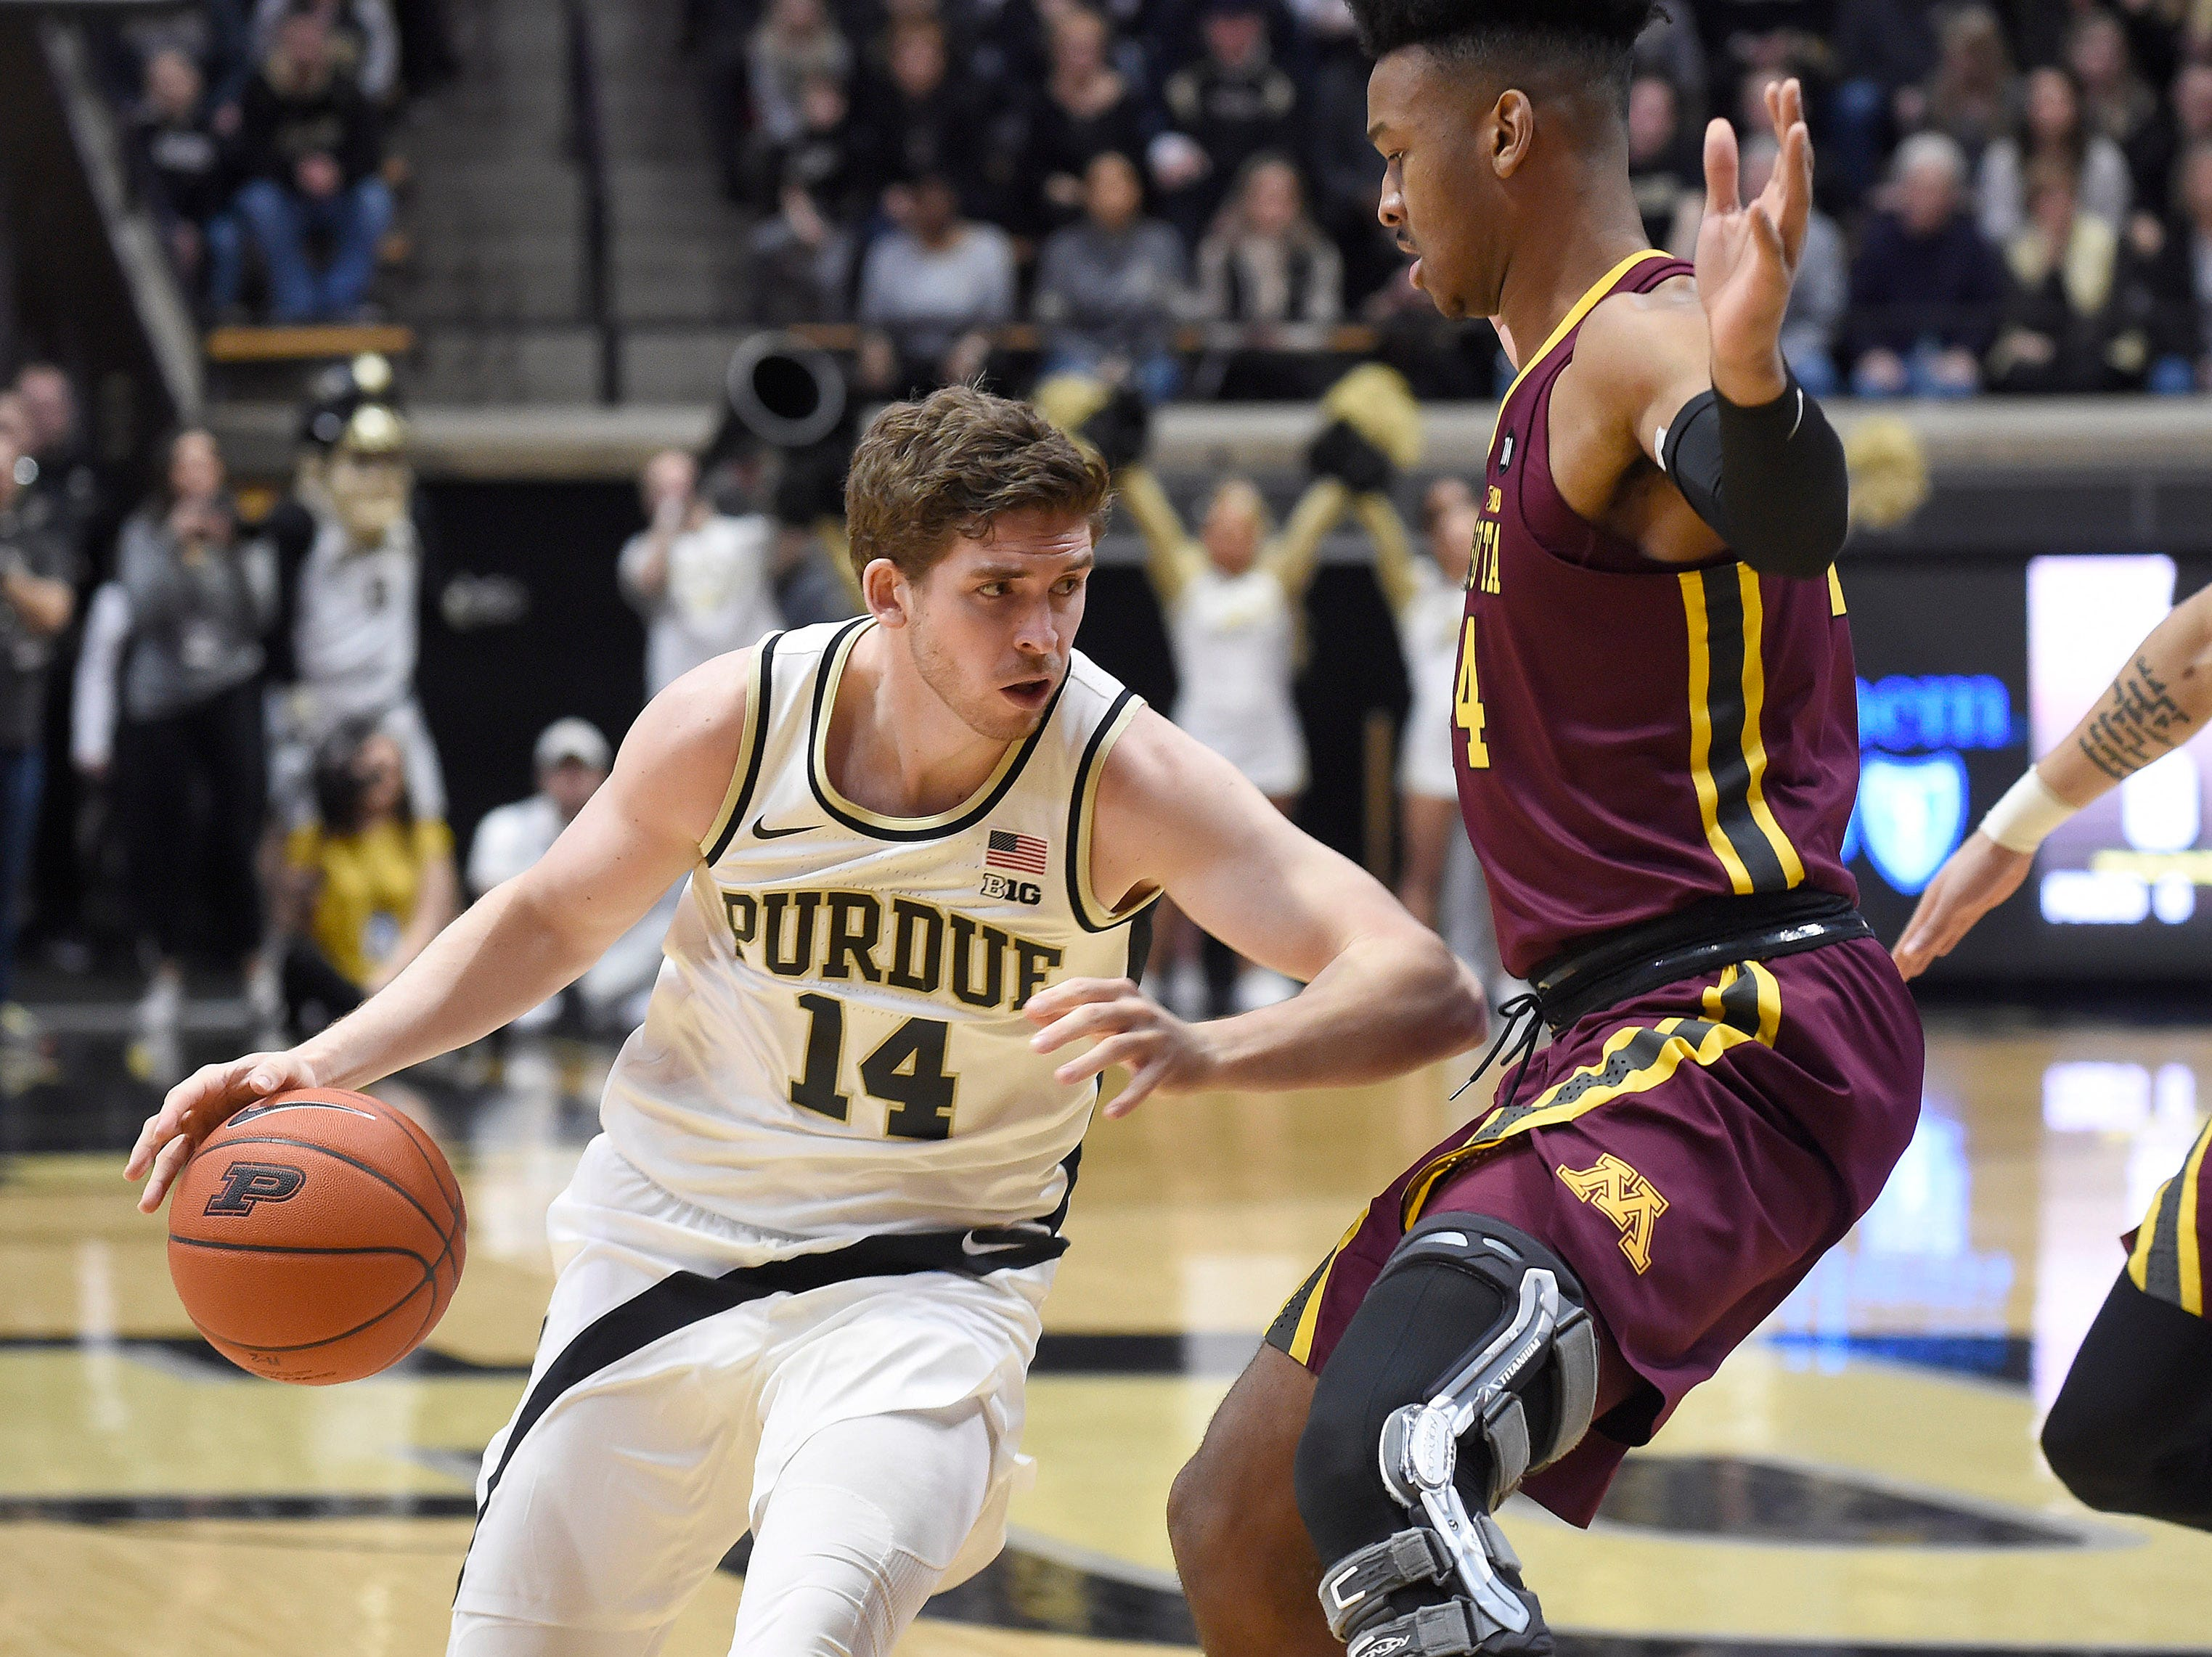 Feb 3, 2019; West Lafayette, IN, USA; Purdue Boilermakers guard Ryan Cline (14) dribbles the ball as Minnesota Golden Gophers forward Eric Curry (24) defends in the first half at Mackey Arena. Mandatory Credit: Sandra Dukes-USA TODAY Sports